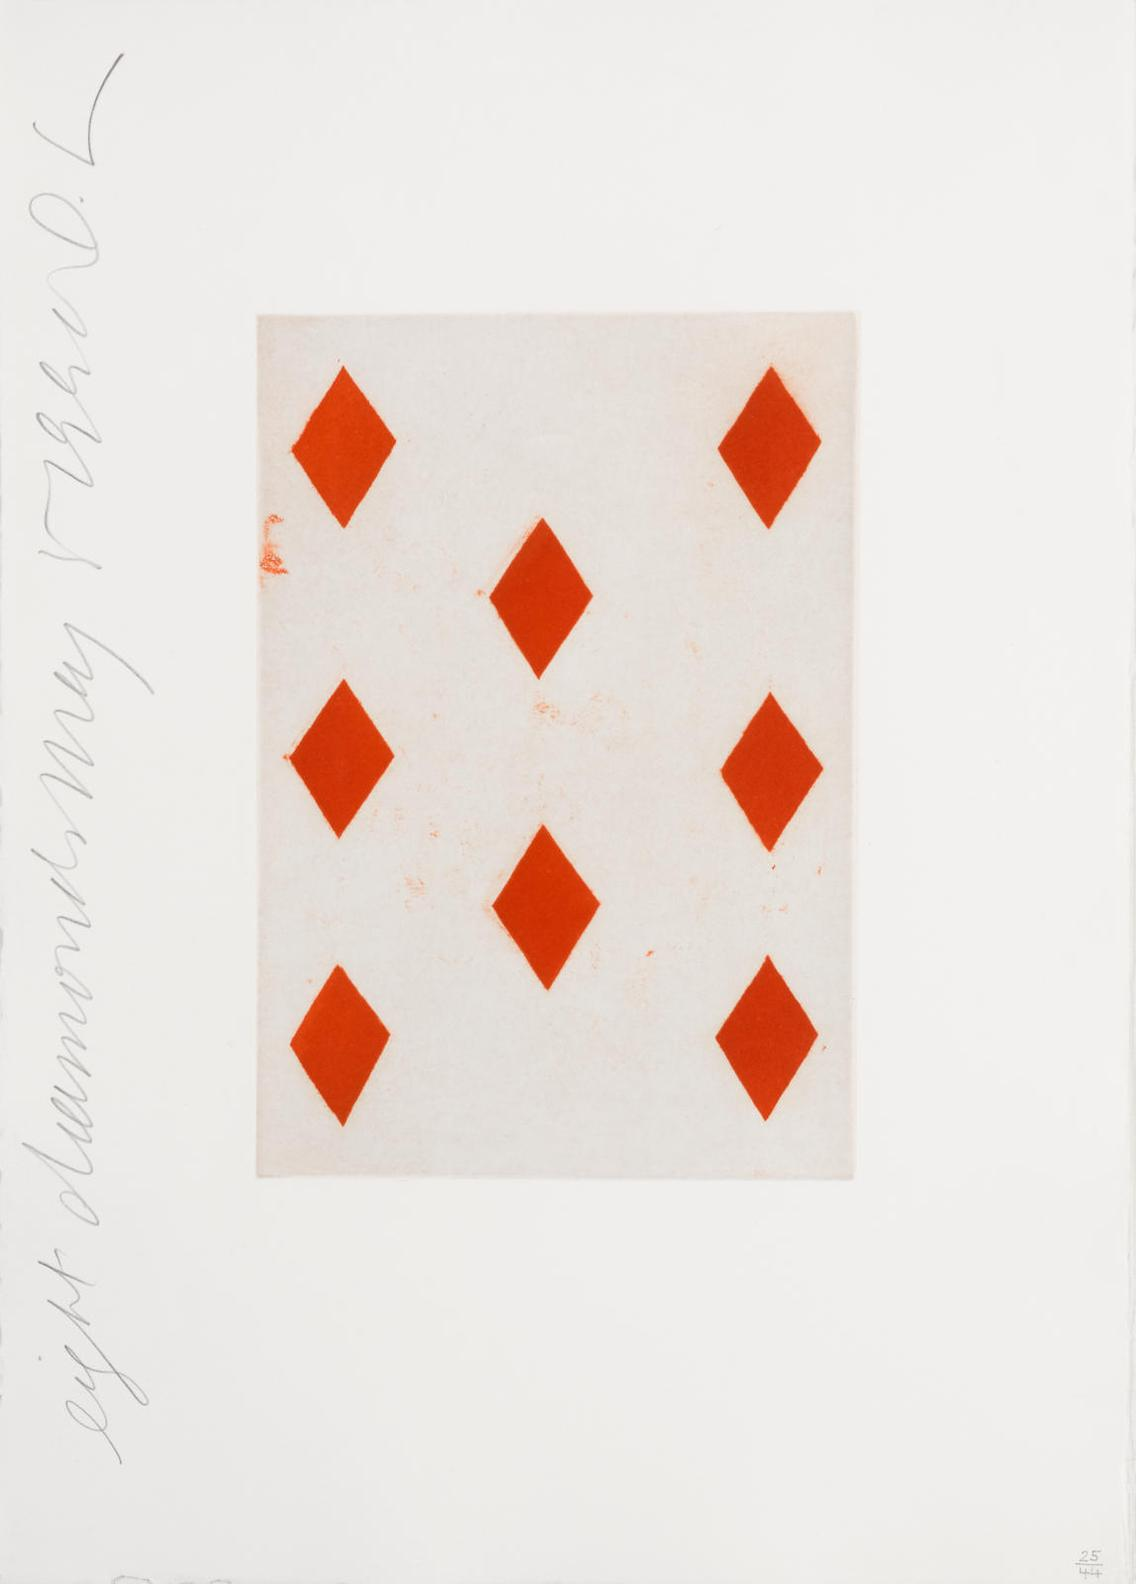 Donald Sultan-Eight Of Diamonds And Five Of Clubs, From Playing Cards-1990